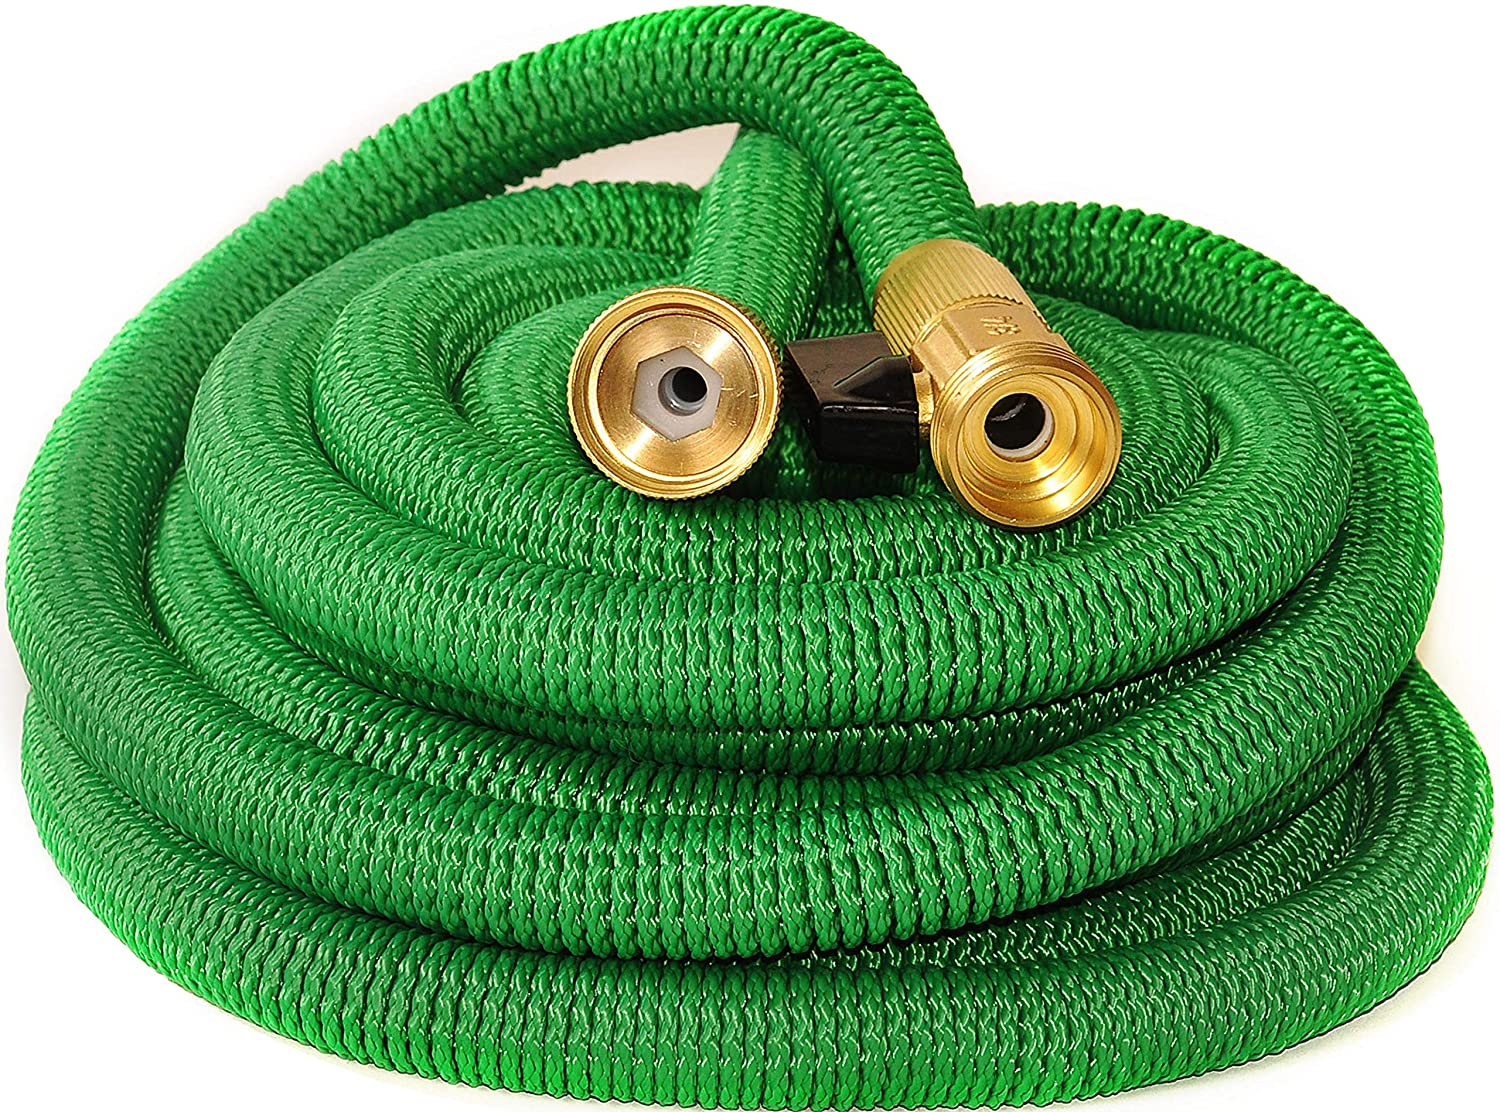 Riemex Expandable Hose Green [New 2019] Heavy Duty Garden Water Hose - Triple Latex - Expanding Solid Brass Metal Fittings Connectors, Flexible Strongest - for All Watering Needs (25 FT)